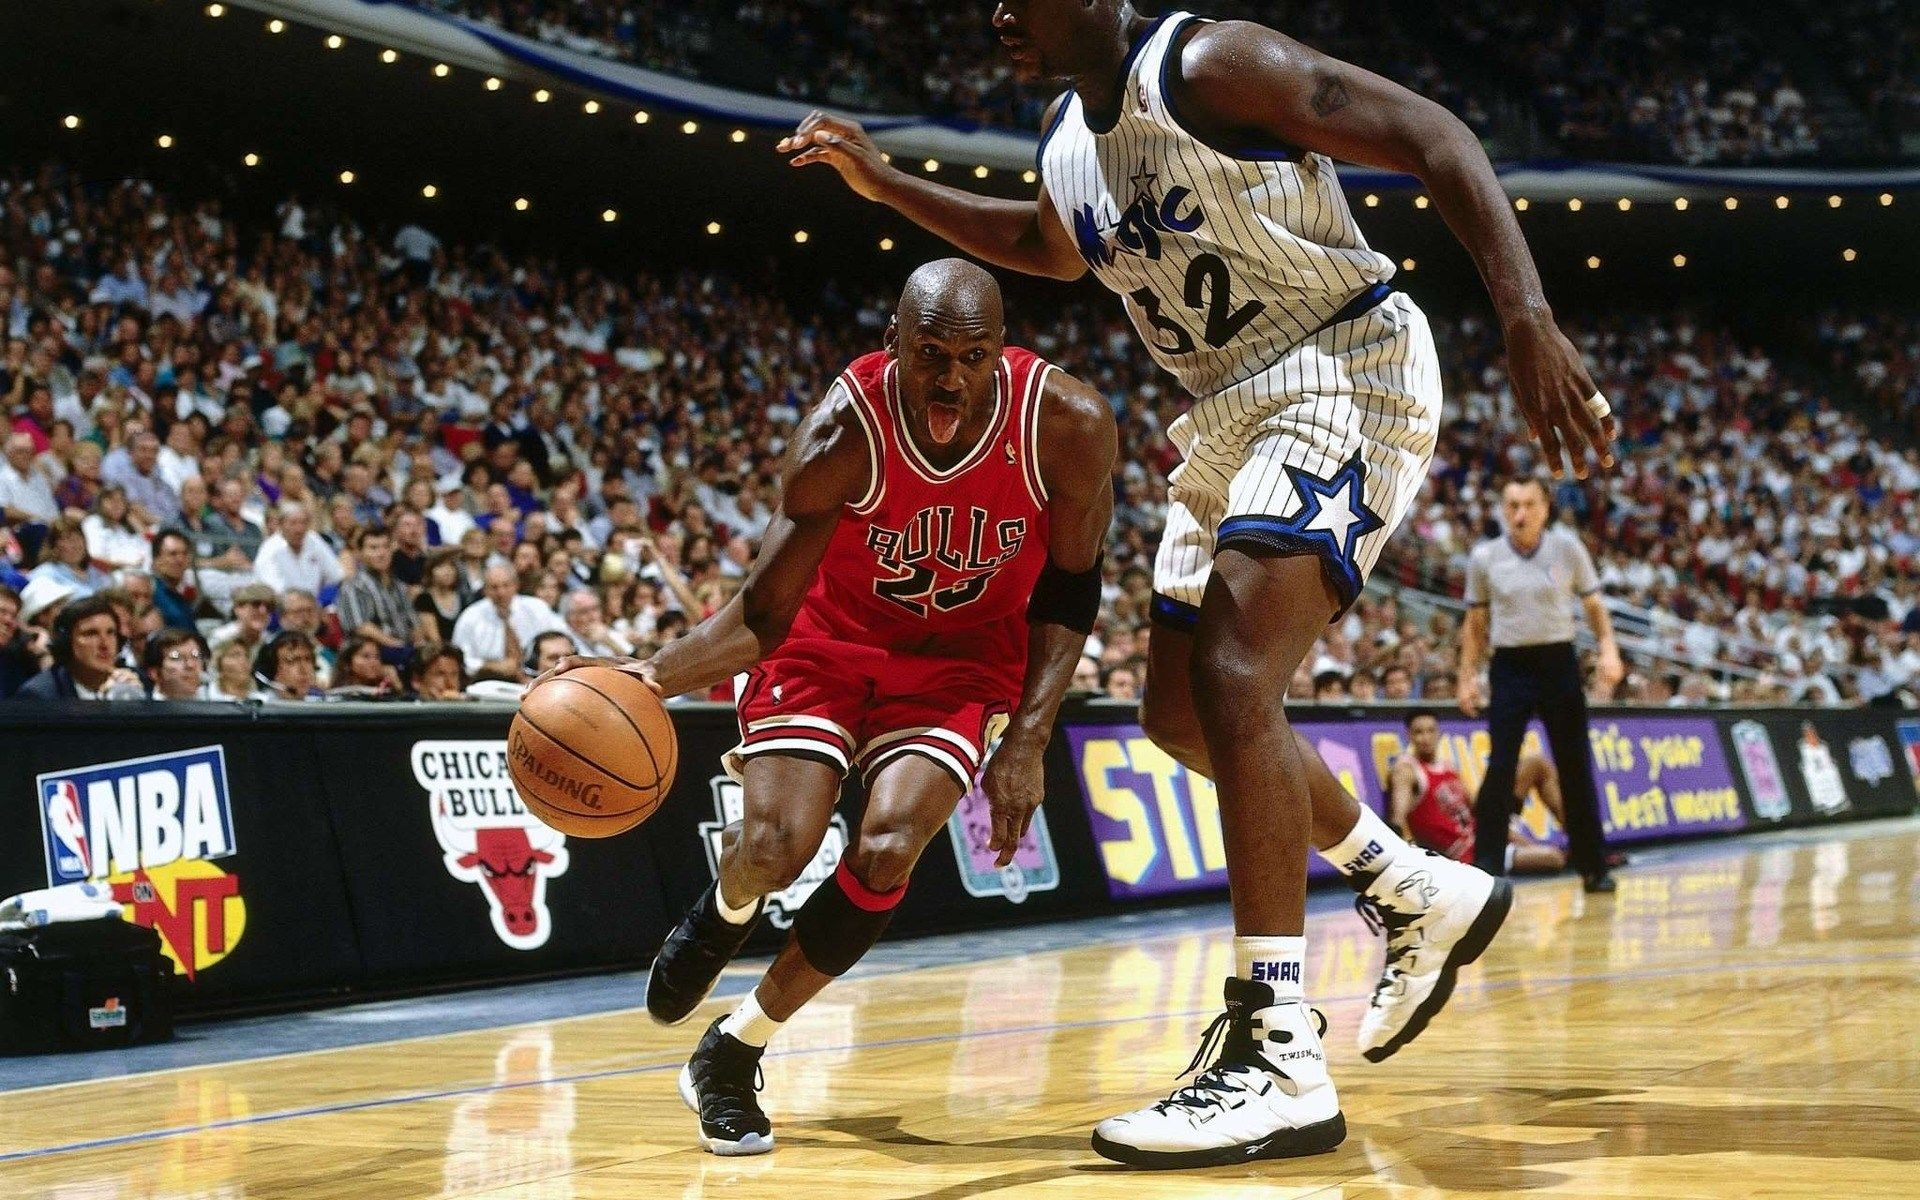 1920x1200 Beautiful Pictures Of Chicago Bulls Michael Jordan Shaquille O Neal Basketball Players